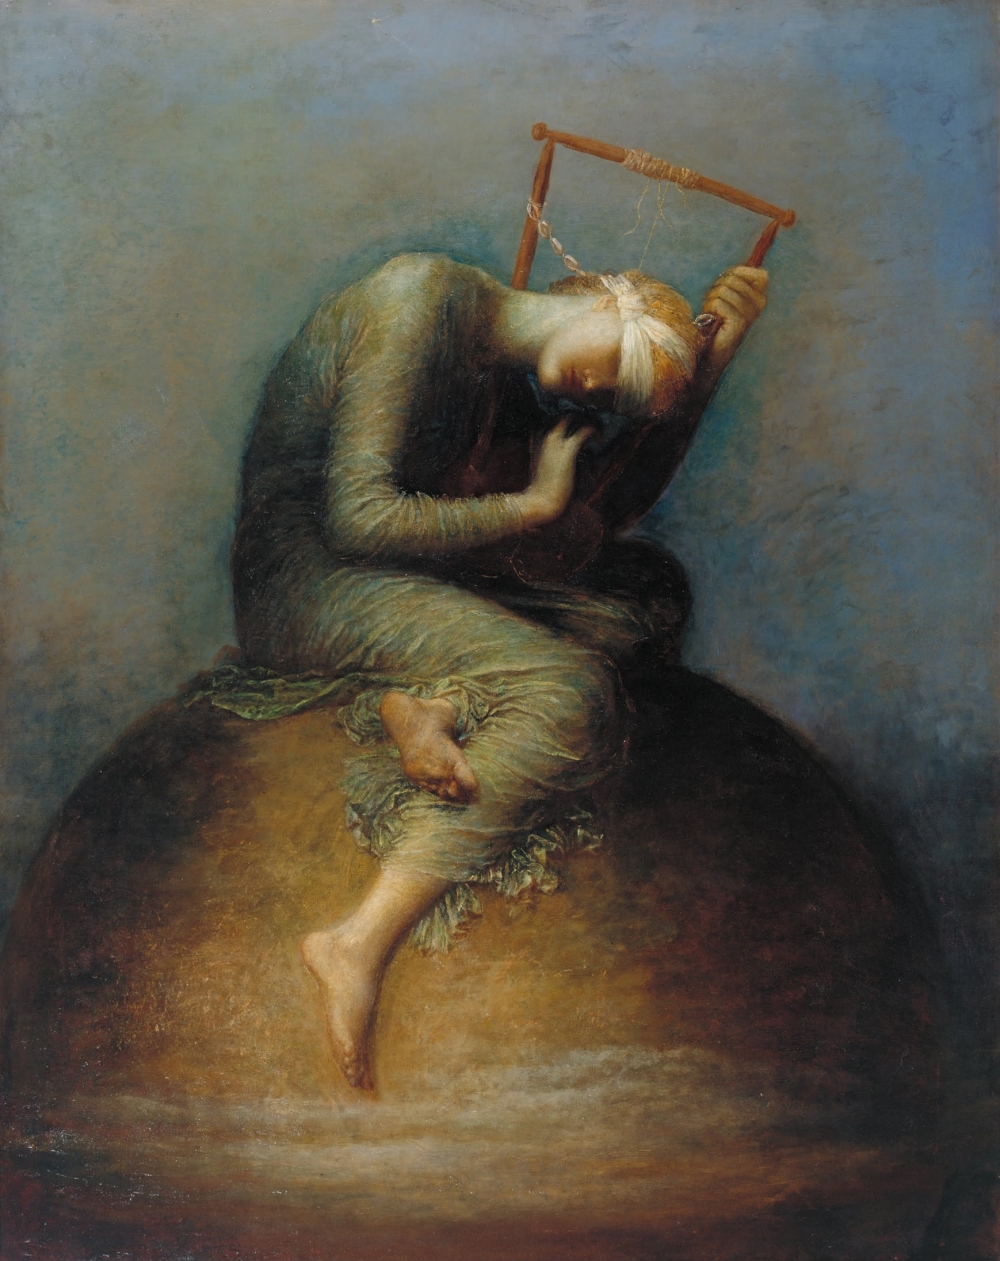 hope-which-lay-at-the-bottom-of-the-box-remained-allegorical-painting-by-george-frederic-watts-1886